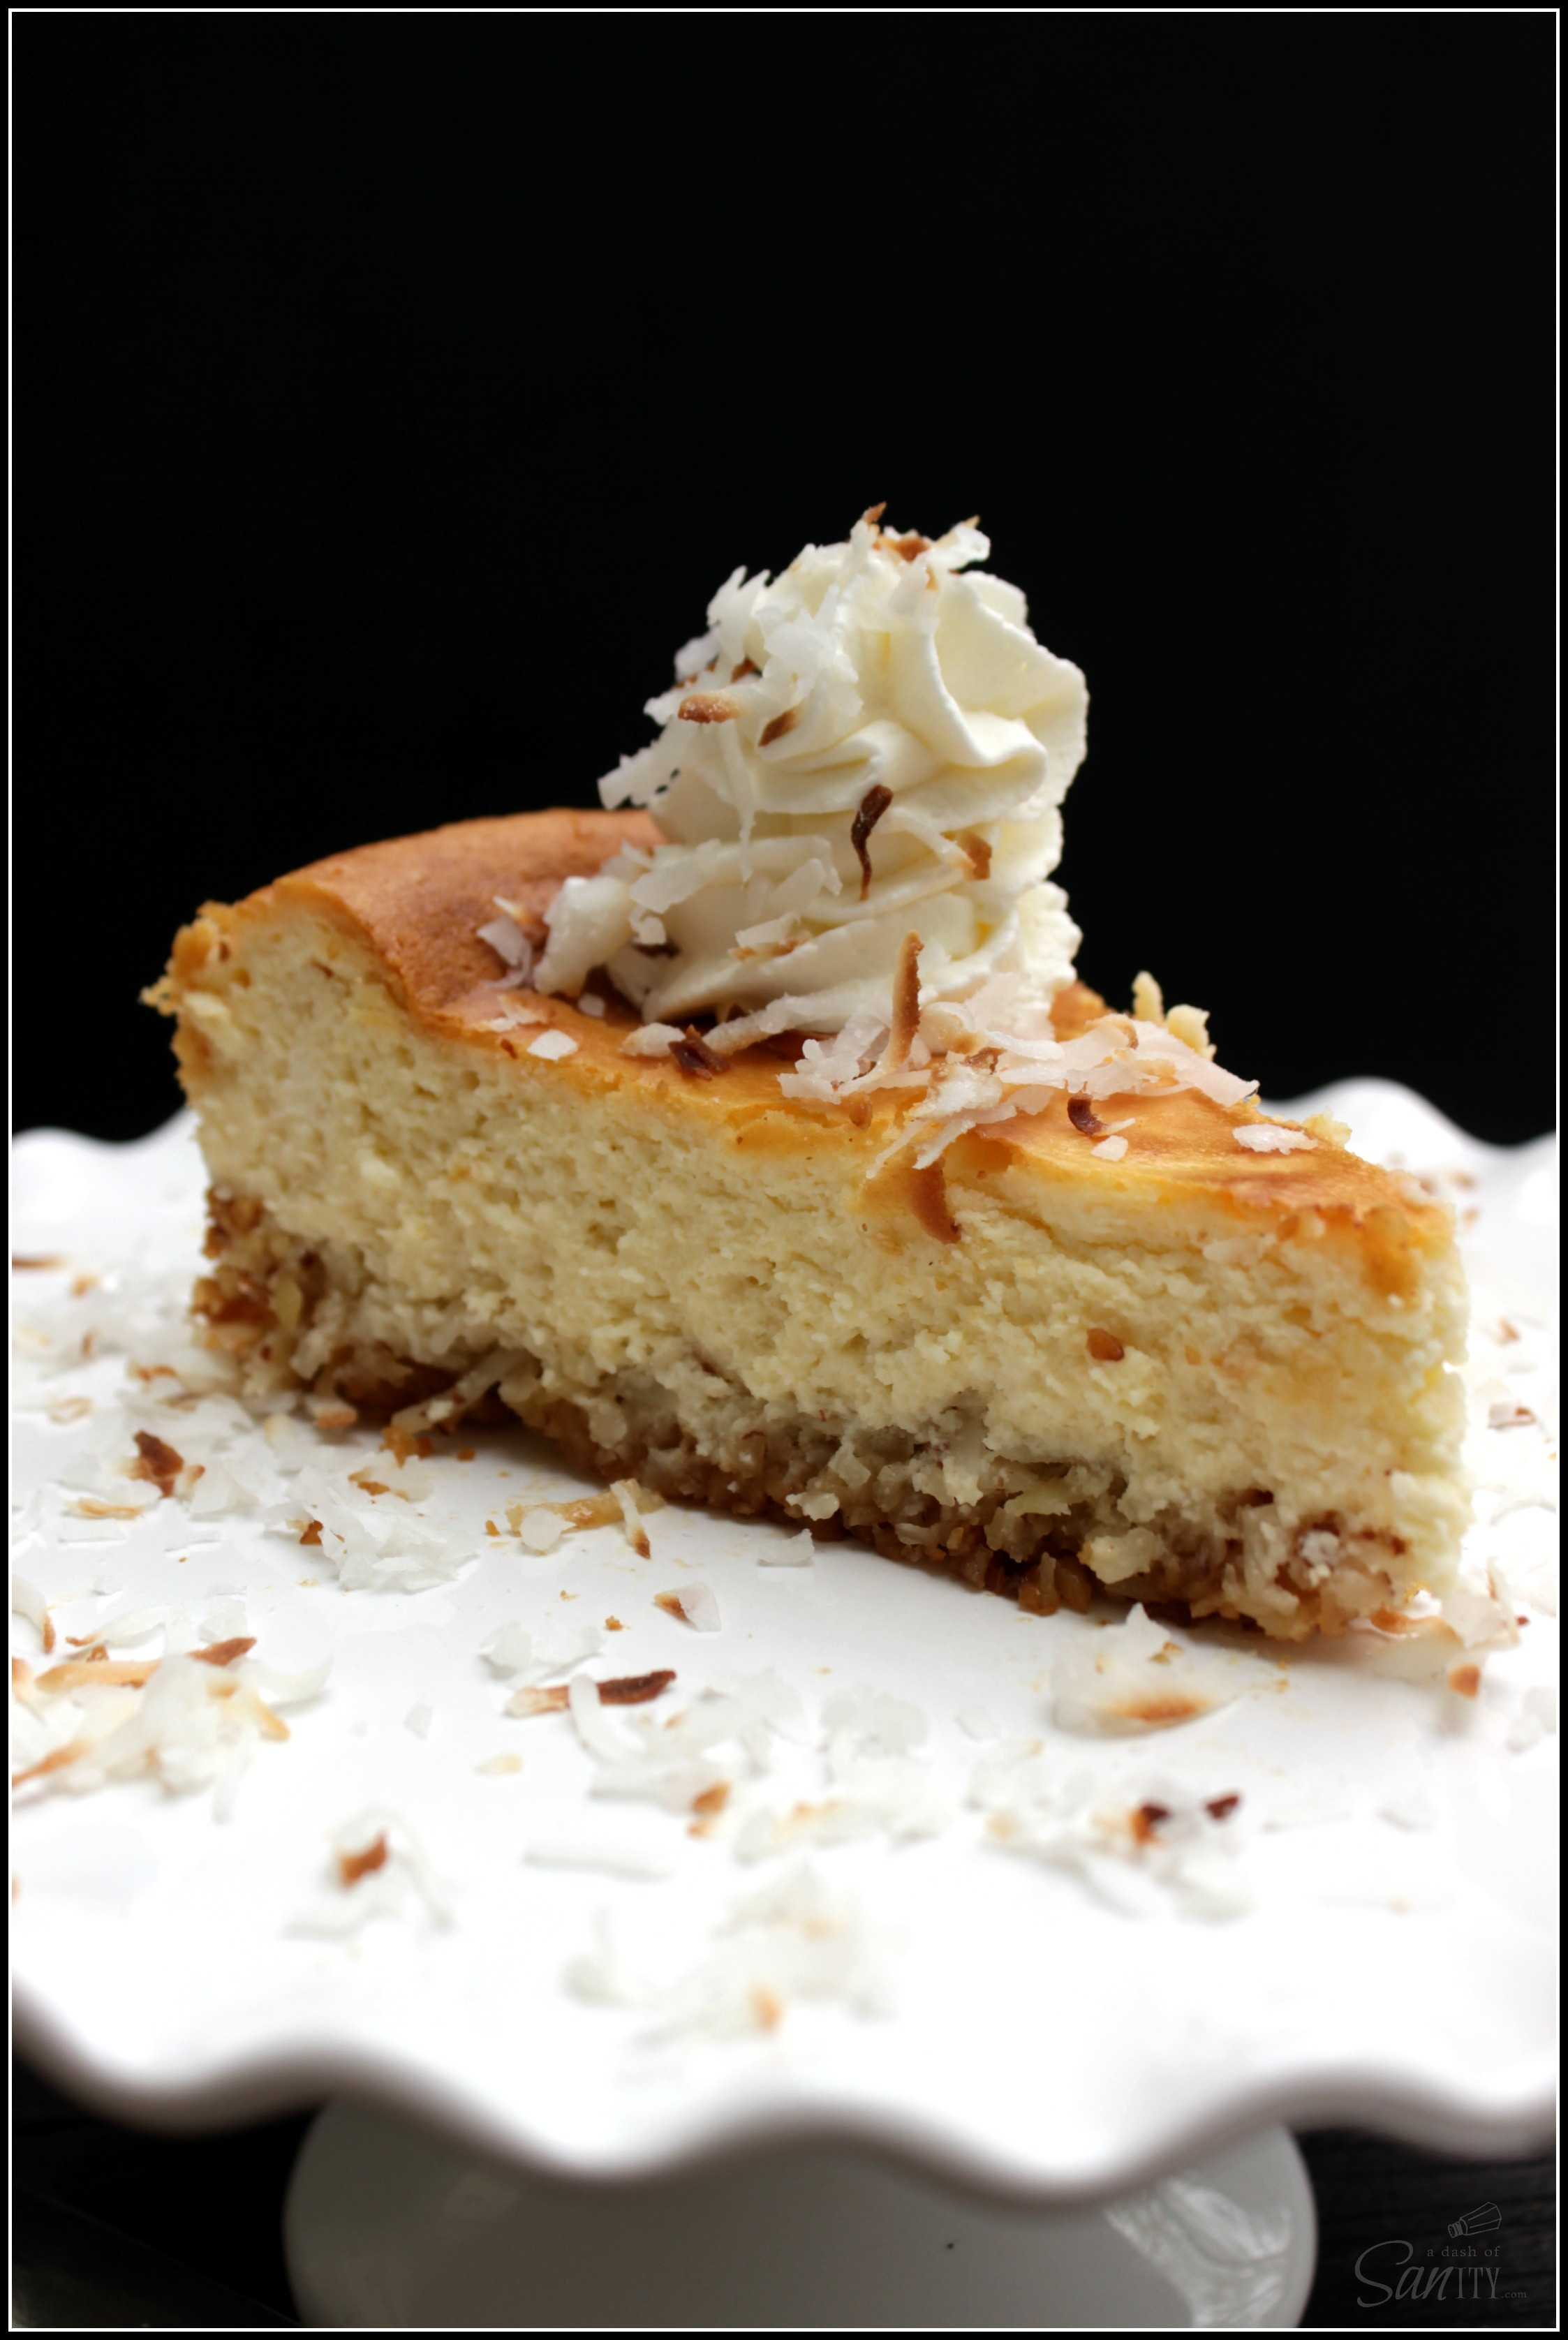 Coconut Cheesecake with Coconut Almond Crust is a creamy gluten free dessert. This unique crust offers a touch of sweetness with the coconut and almonds.